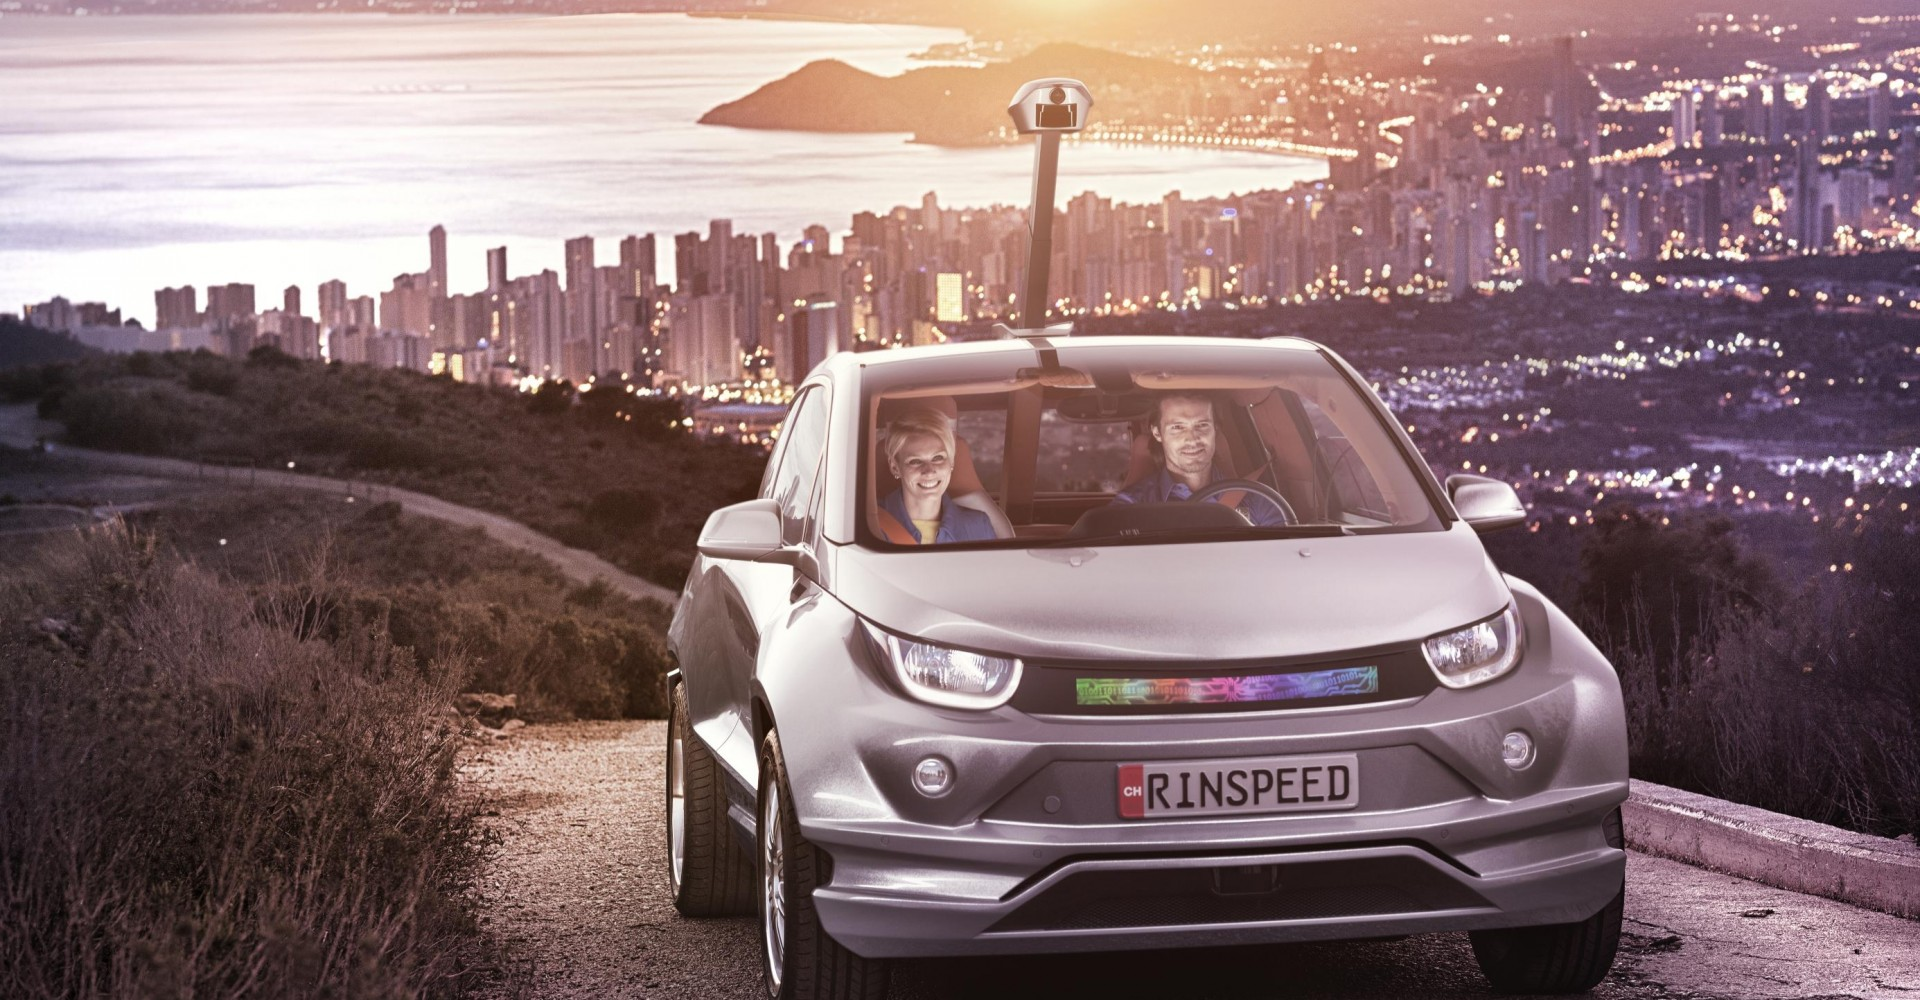 Rinspeed 'Budii' Is The Periscope-Equipped BMW i3 Of Your Nightmares